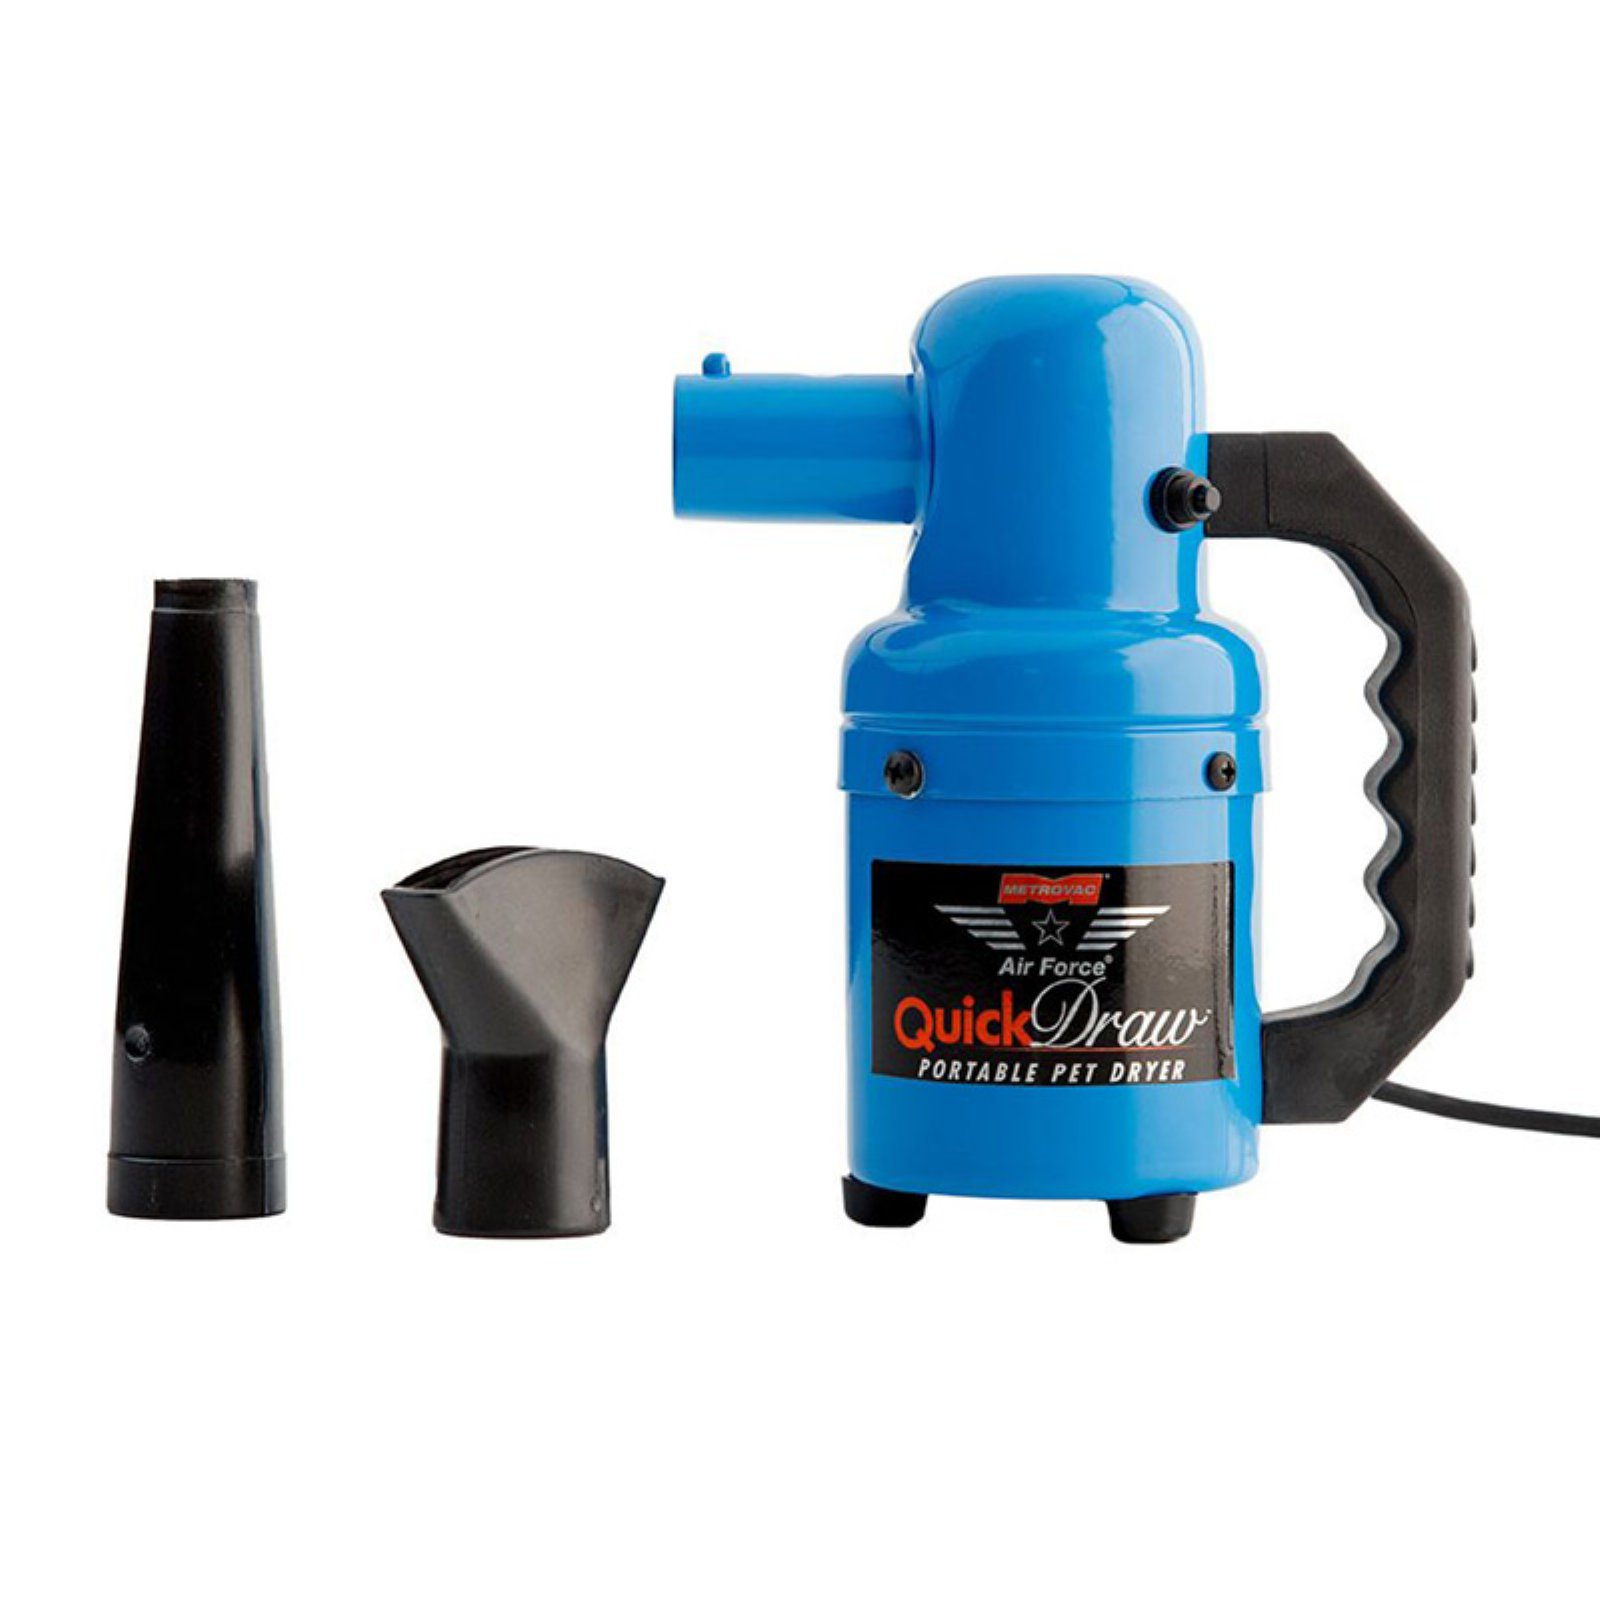 Metrovac Air Force Quick Draw Mini Pet Dryer